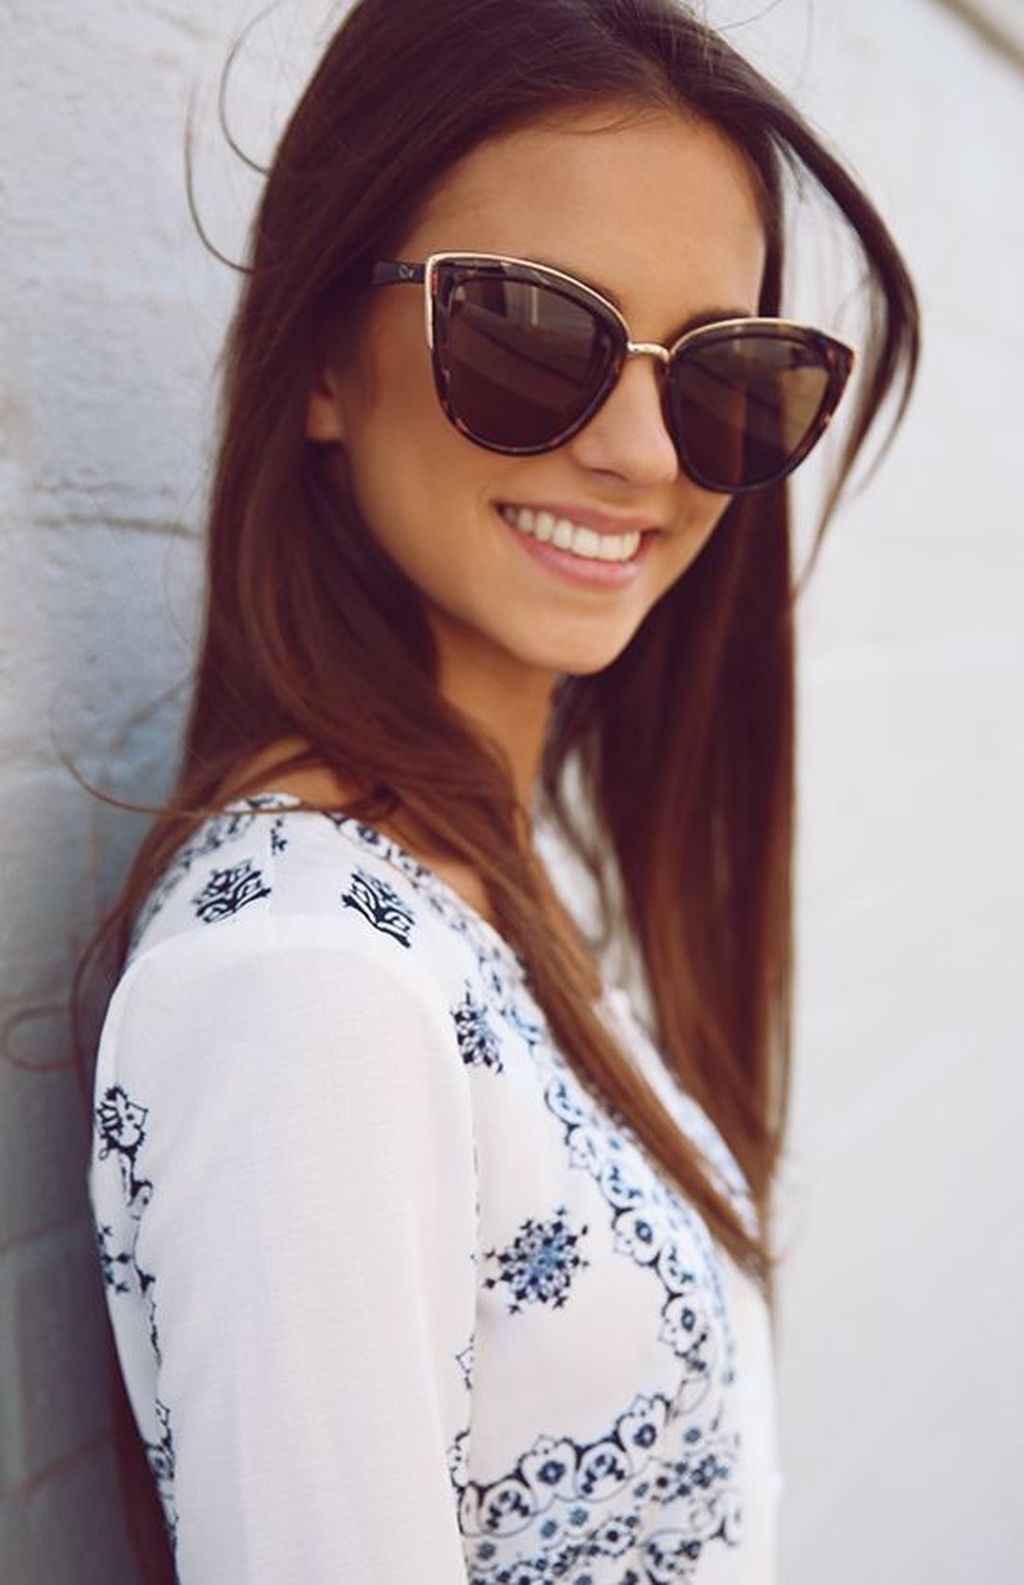 Pin by mintrockco on 'MLifeStyle Girl with sunglasses